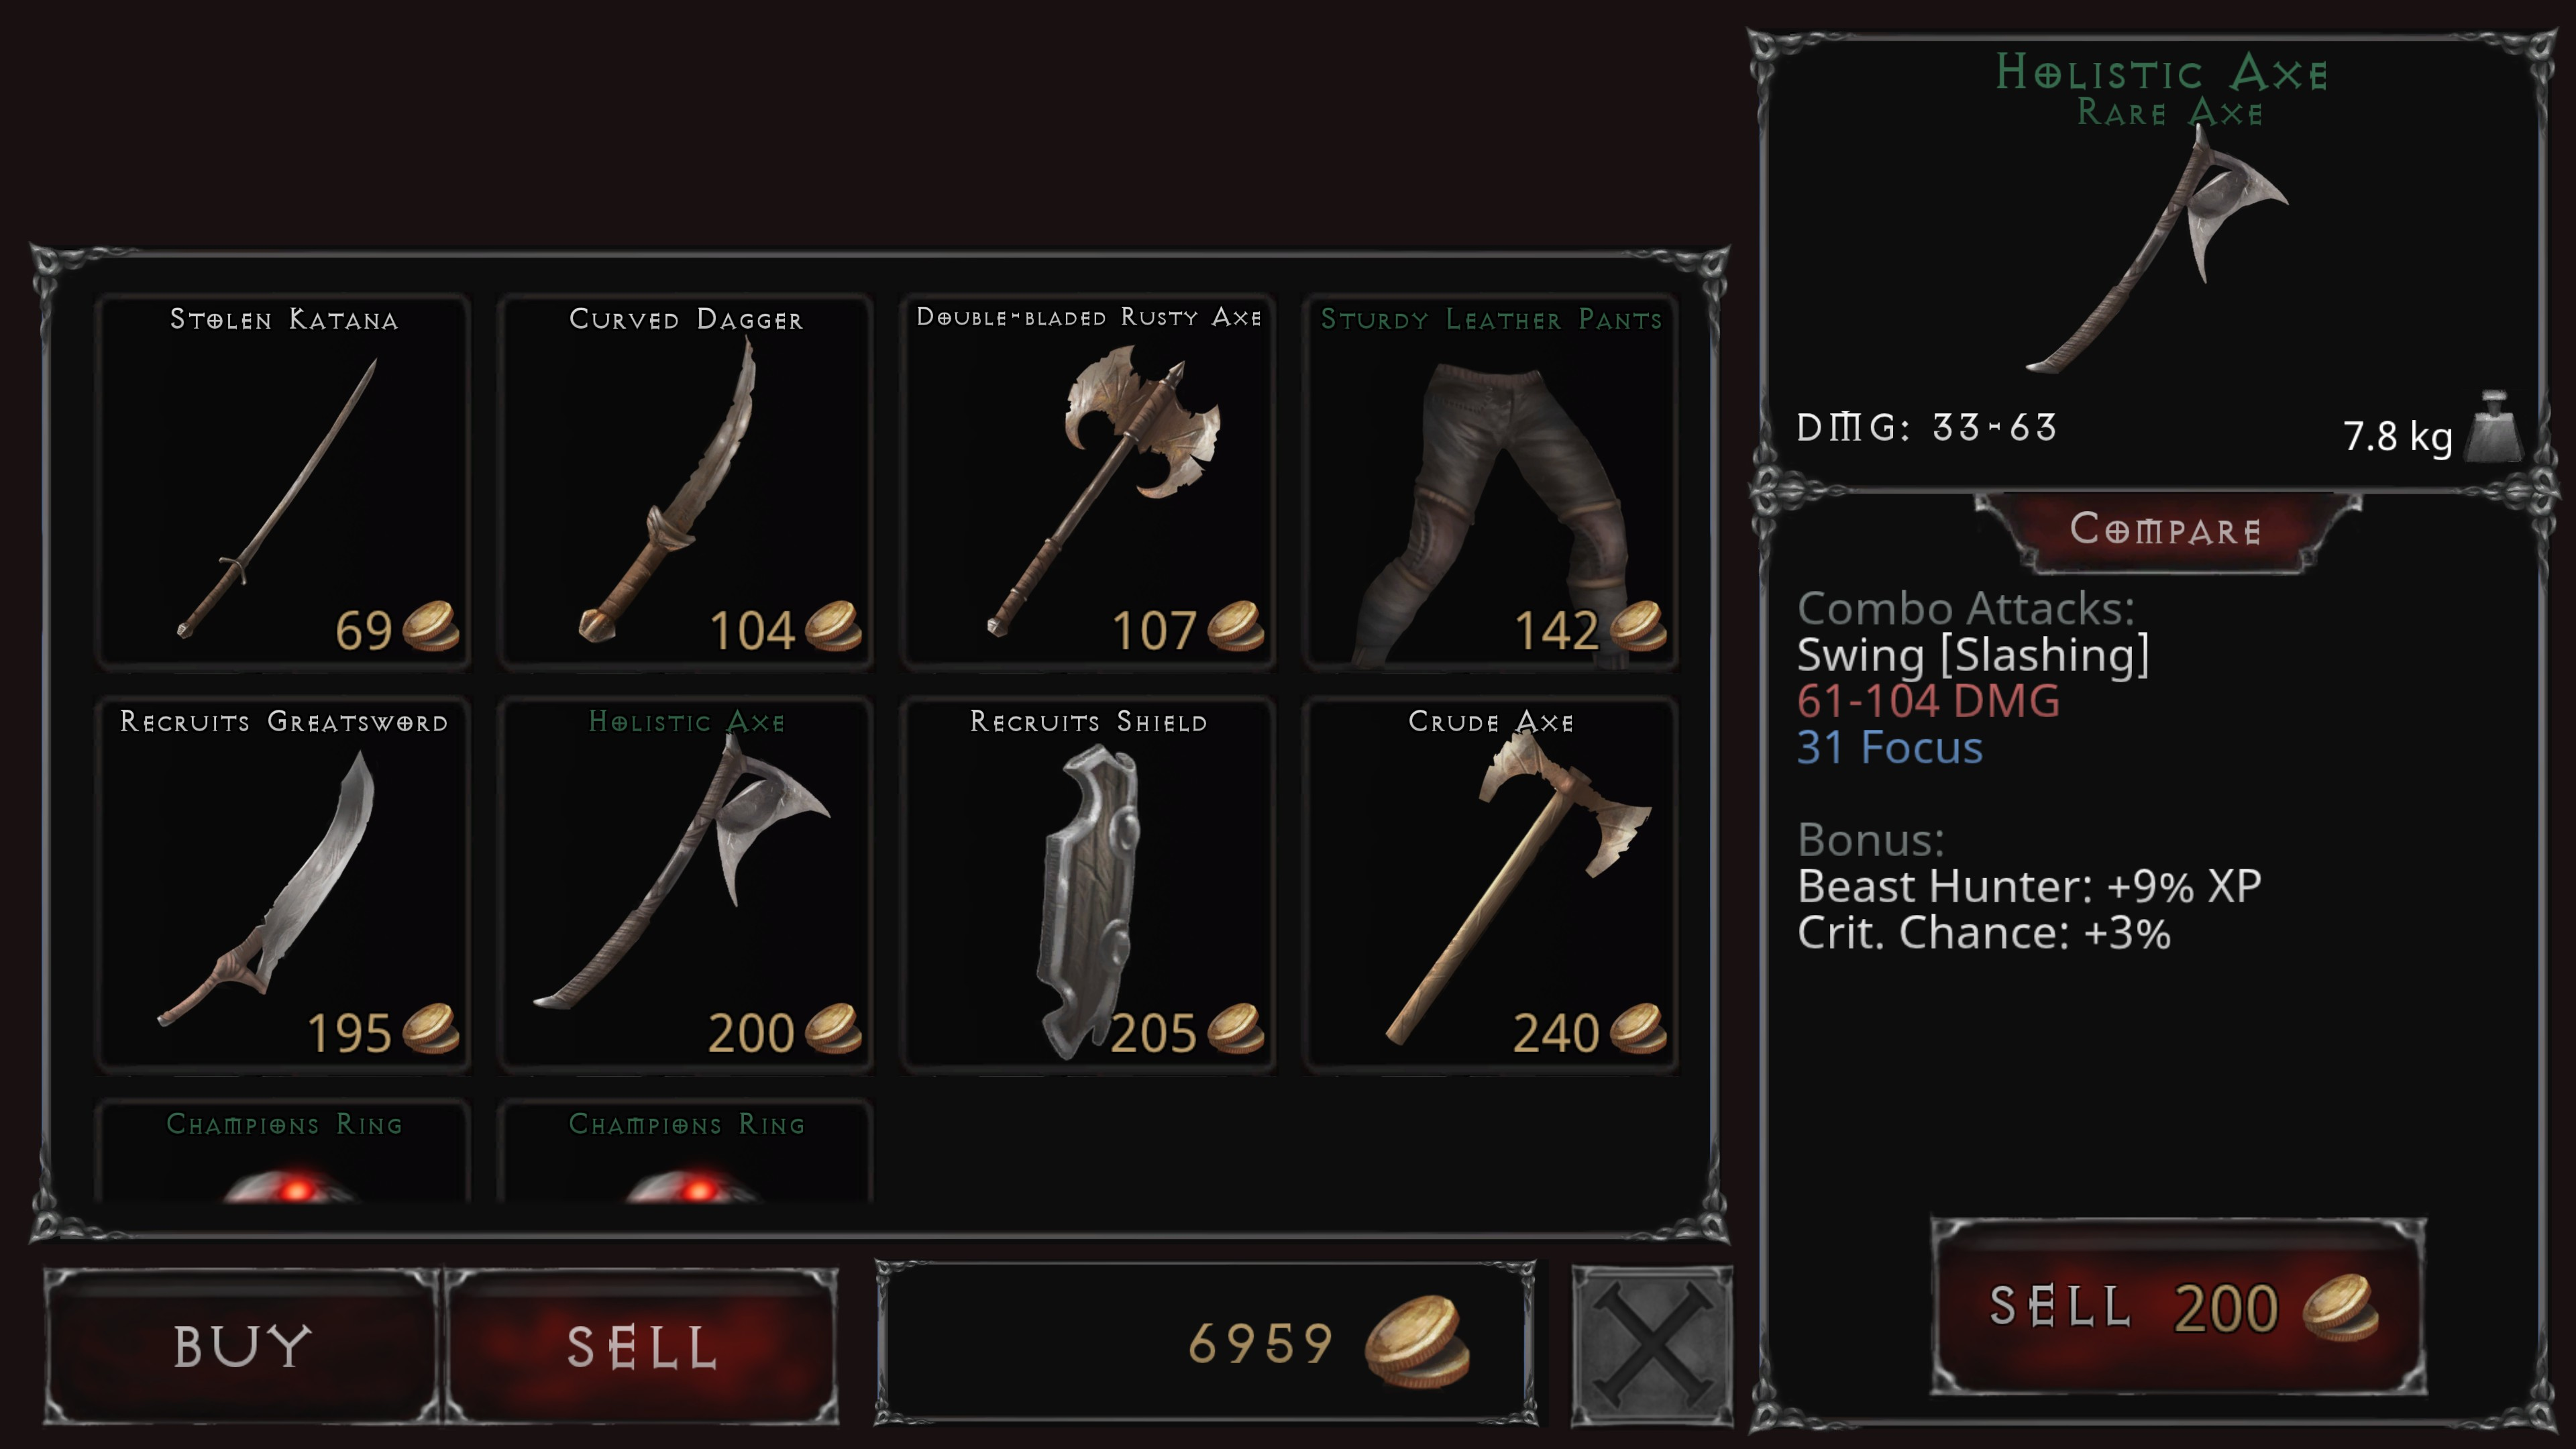 Vampire's Fall  Origins. Shopping for items. A displayed rare axe has additional bonuses for experience gain verse beasts and critical strike chance.